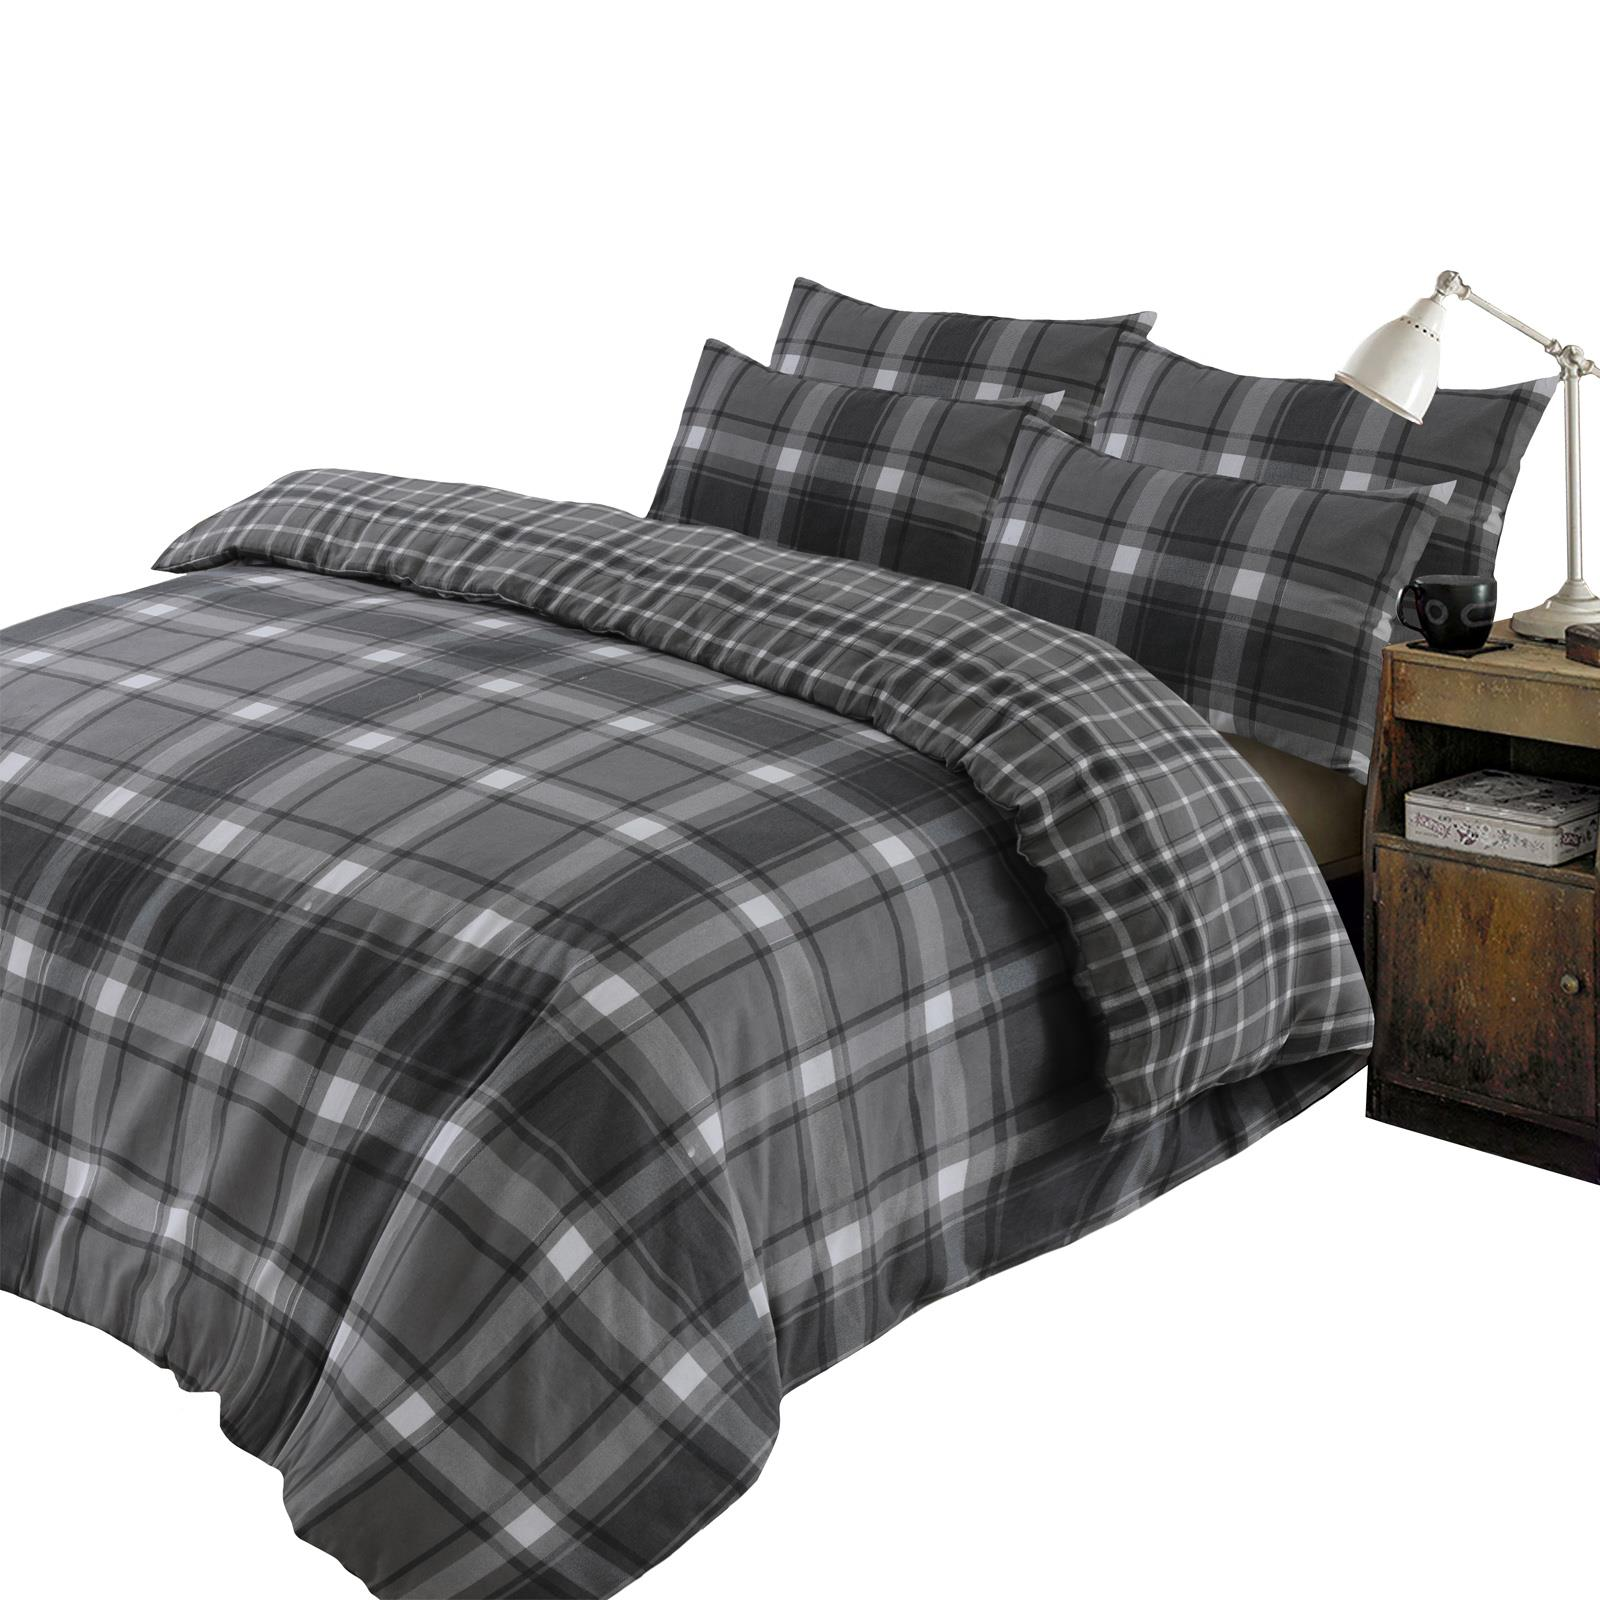 Brushed-Cotton-Tartan-Duvet-Cover-with-Pillowcase-Set-Aspen-Check-Flannelette thumbnail 4